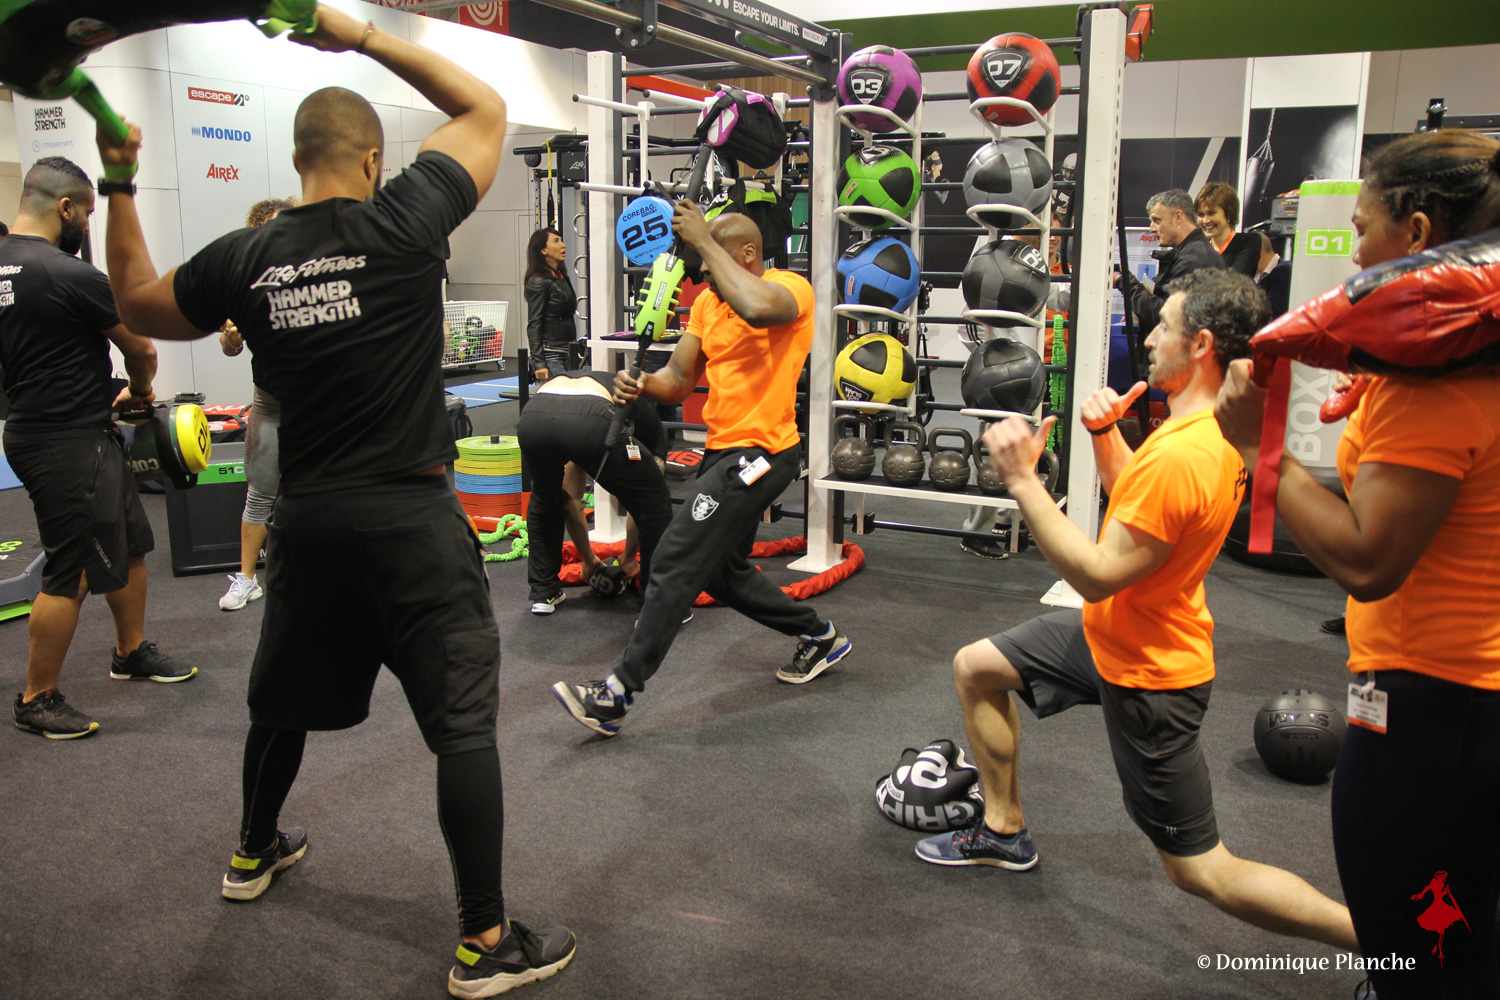 Salon Fitness Musculation Le Body Fitness A Le Vent En Poupe La Parizienne